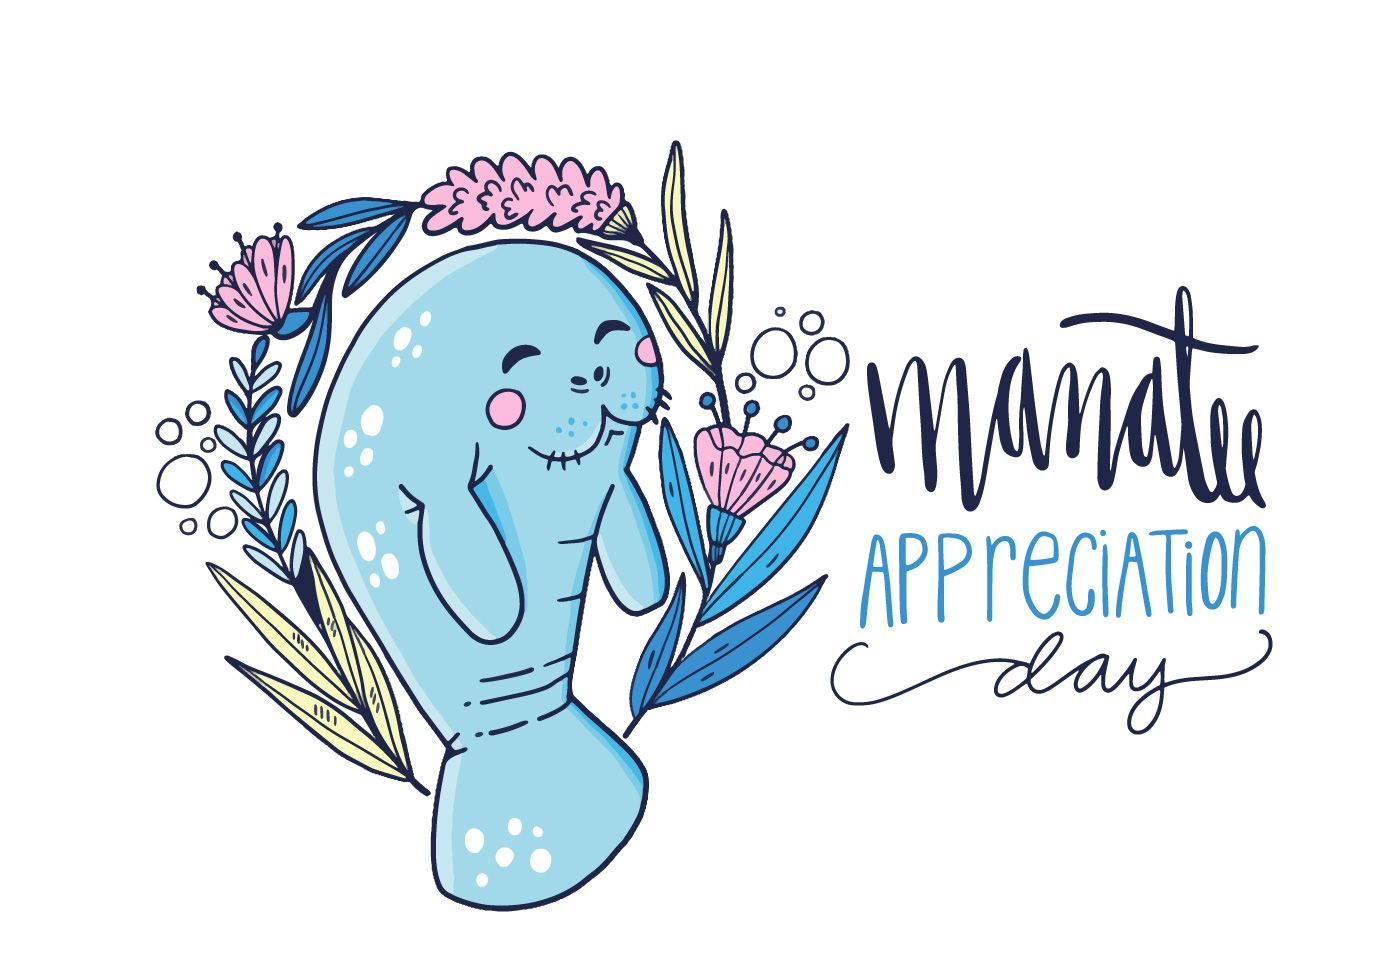 Cute character with flowers. Manatee clipart drawn